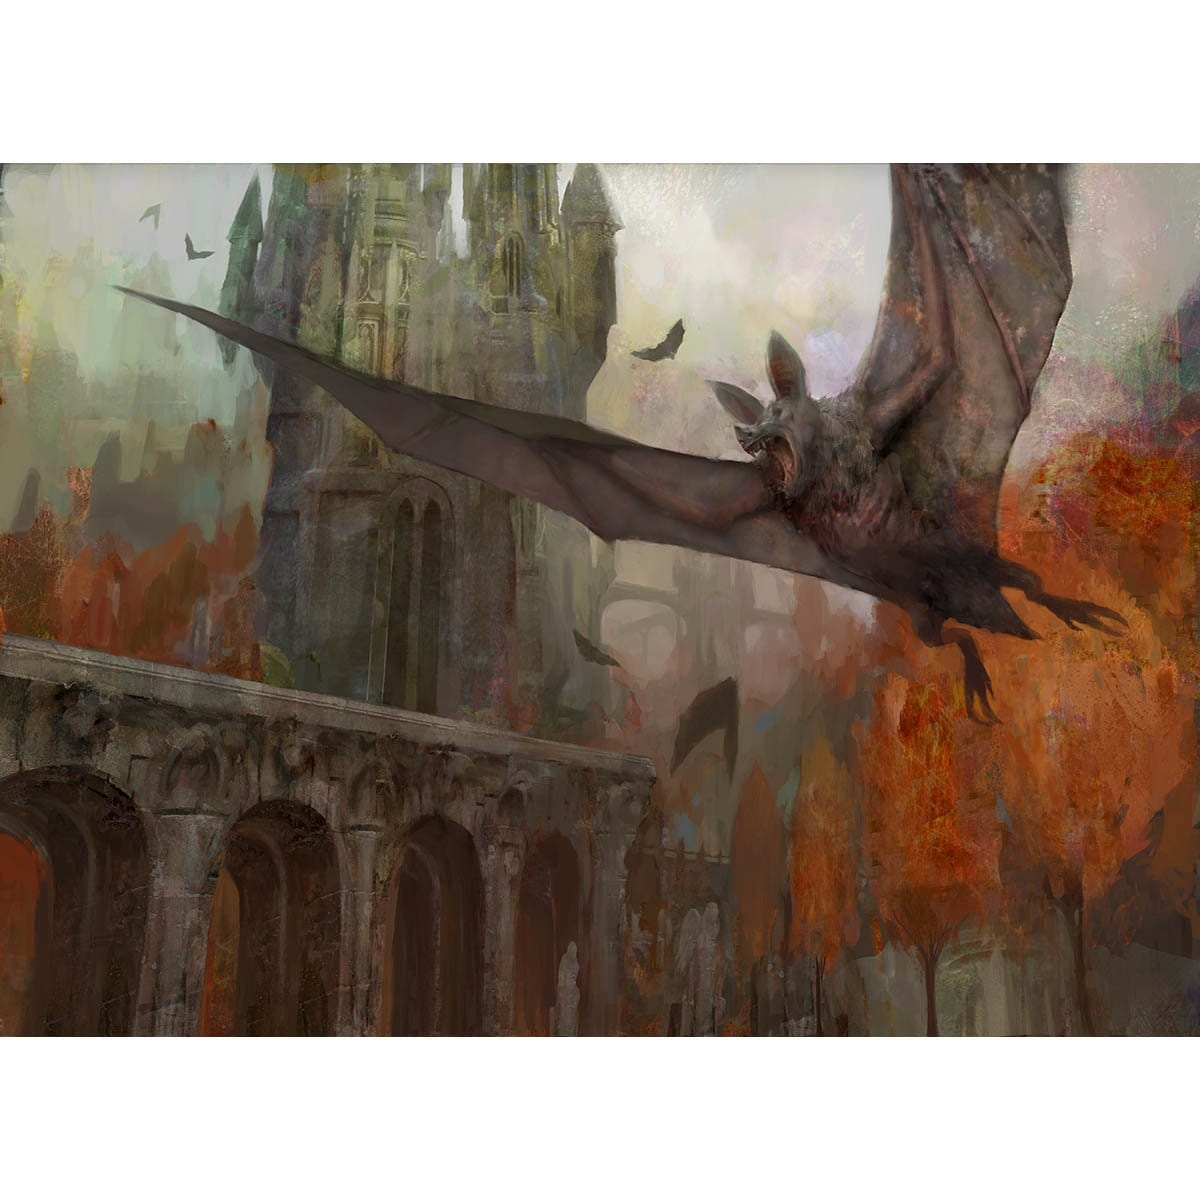 Bartizan Bats Print - Print - Original Magic Art - Accessories for Magic the Gathering and other card games